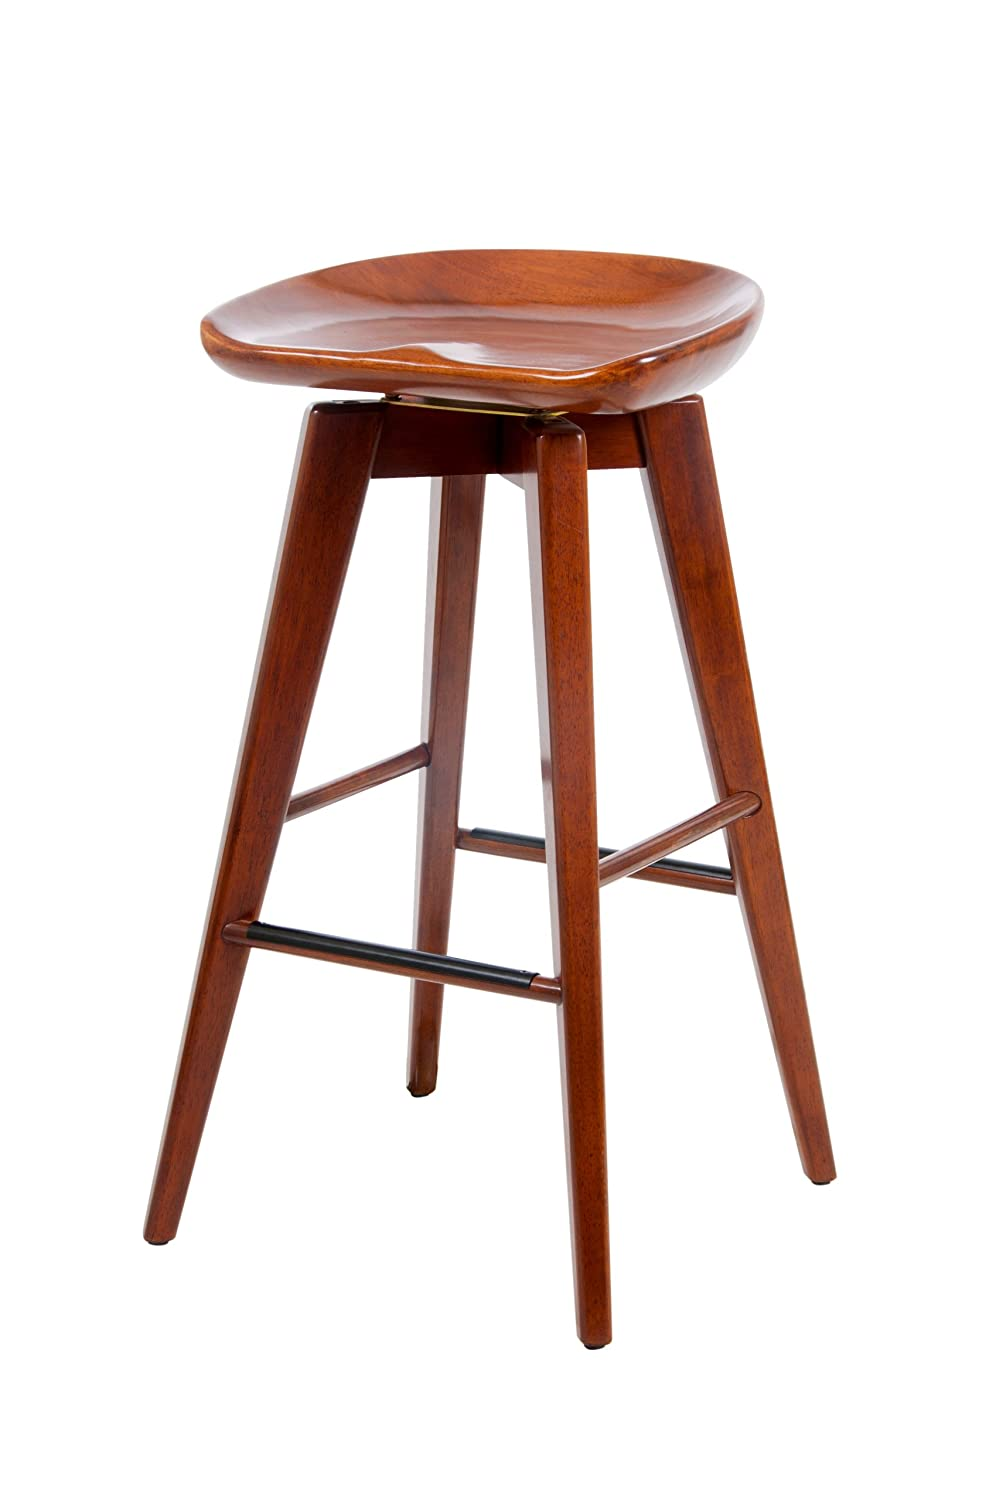 Amazon.com Boraam 54129 Bali Bar Height Swivel Stool 29-Inch Cappuccino Kitchen u0026 Dining  sc 1 st  Amazon.com & Amazon.com: Boraam 54129 Bali Bar Height Swivel Stool 29-Inch ... islam-shia.org